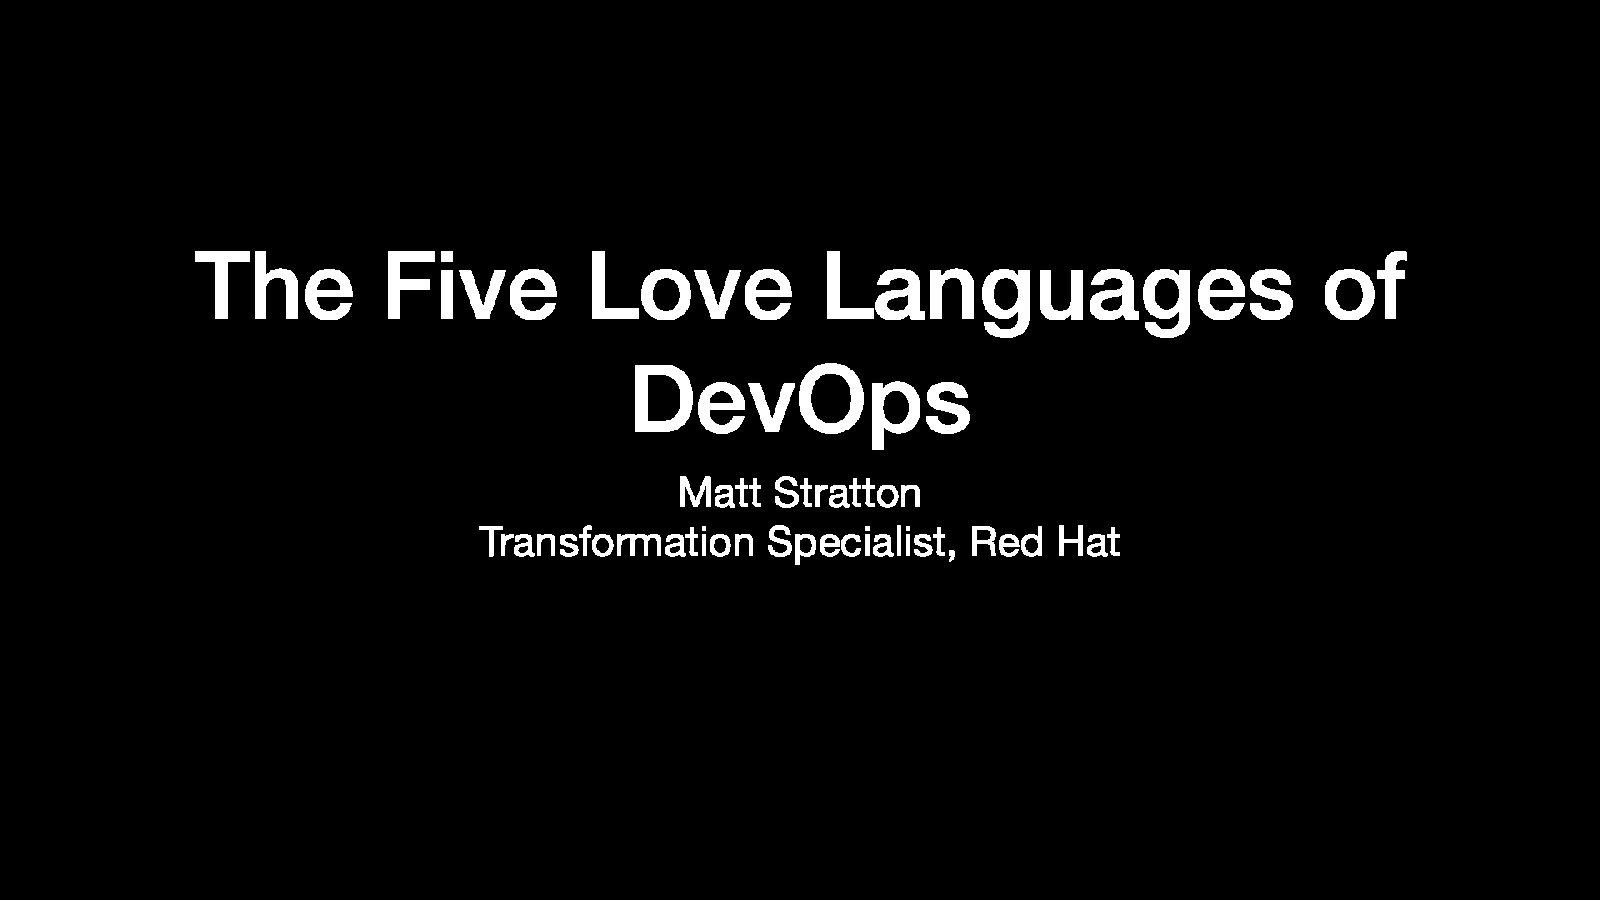 The Five Love Languages of DevOps